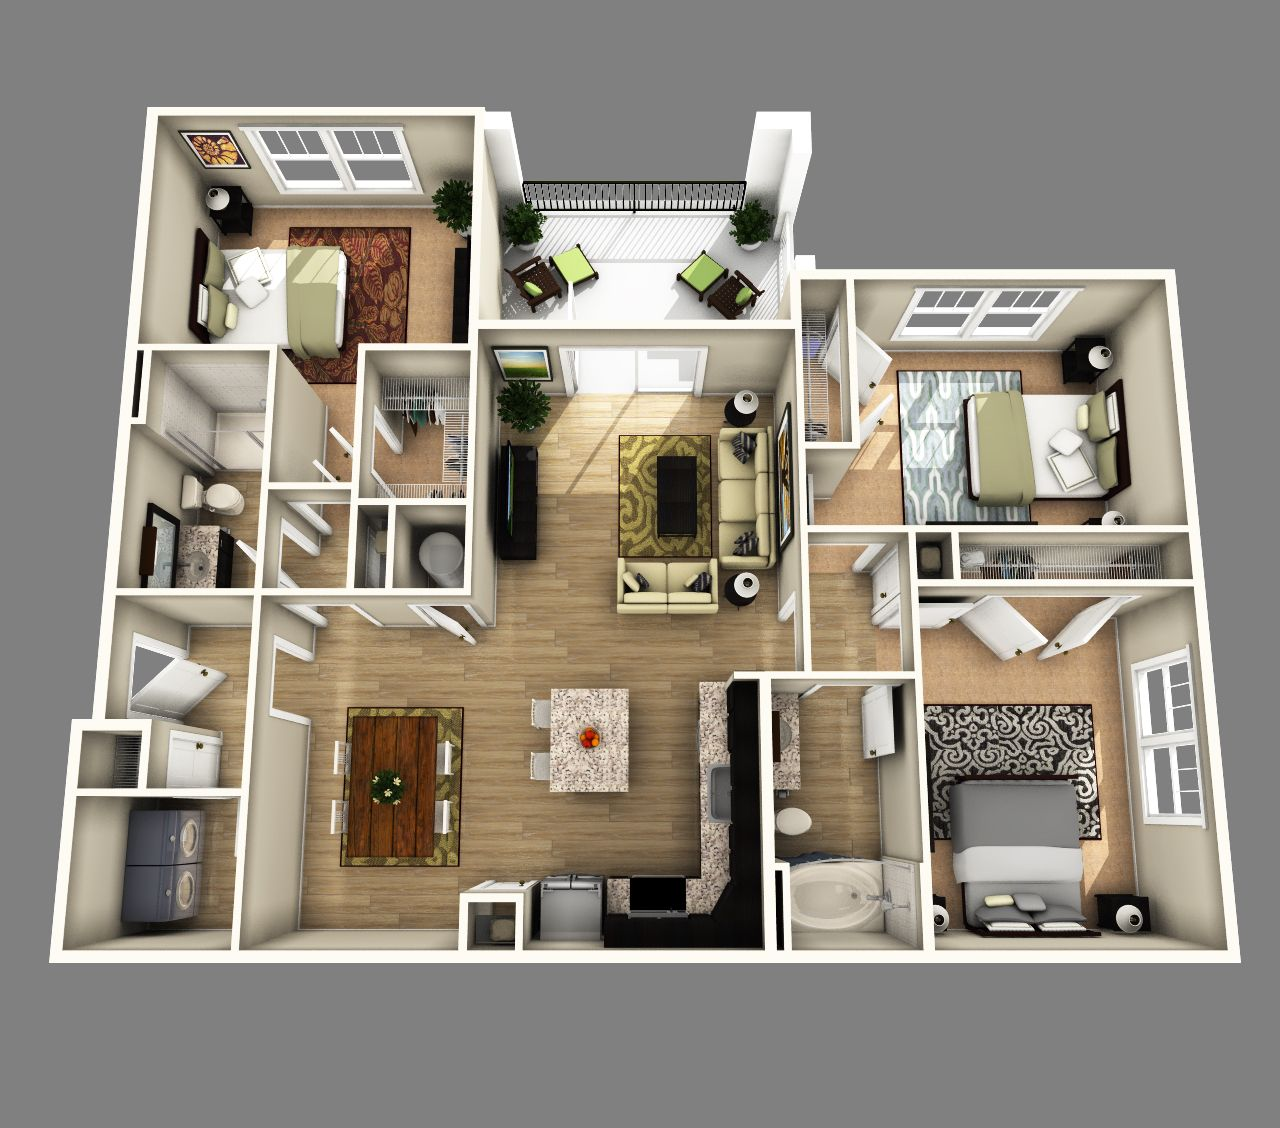 3d open floor plan 3 bedroom 2 bathroom - google search | home